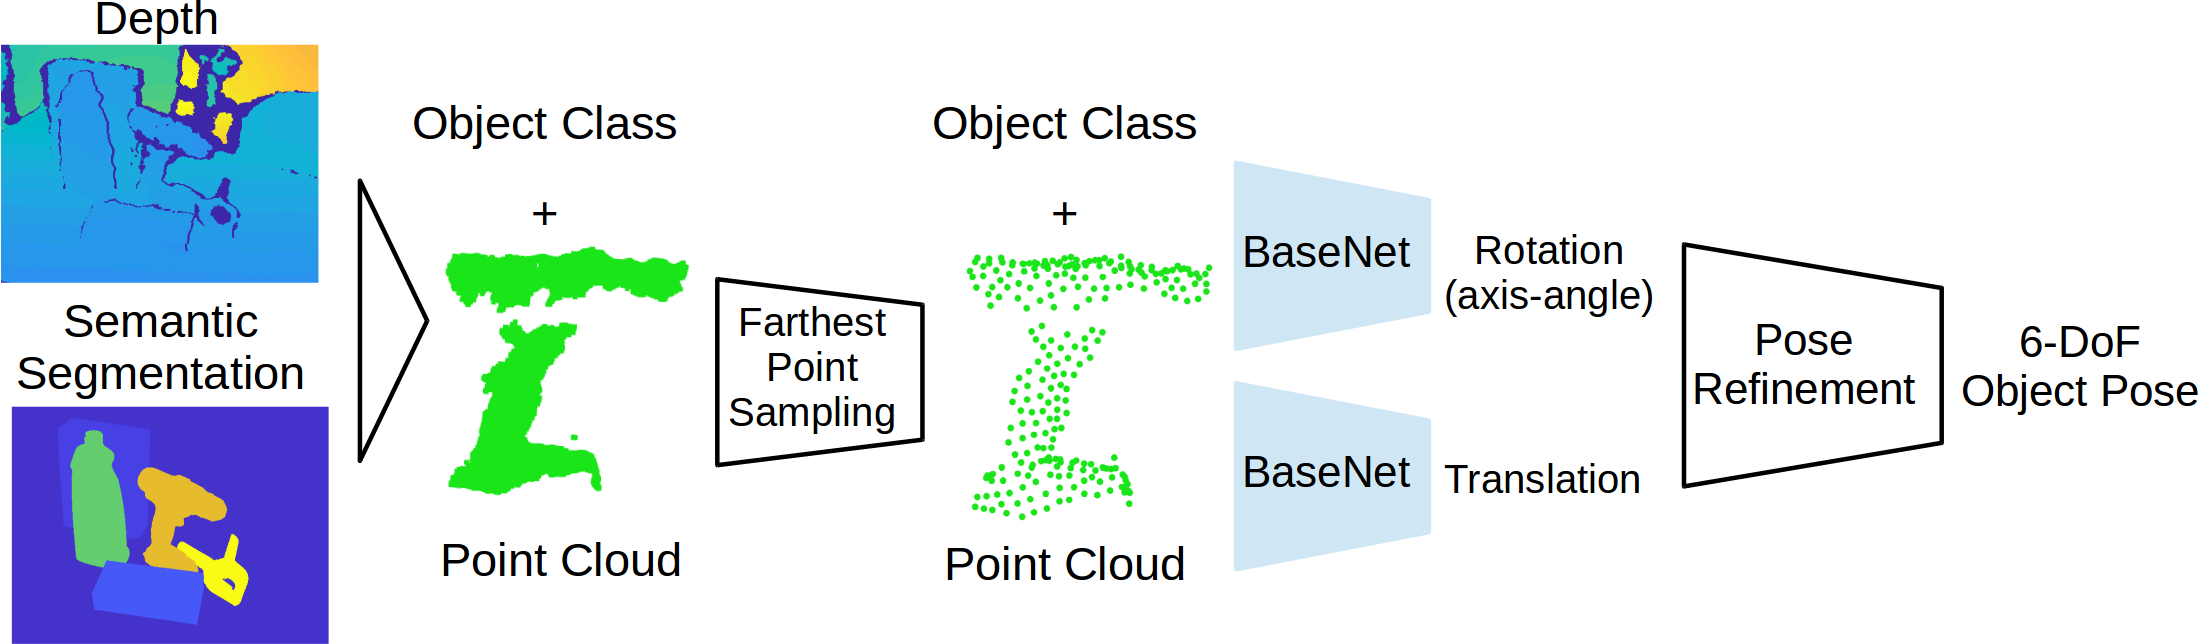 System overview. A point cloud is created using the depth data and the output from a semantic segmentation method. This segment is processed with farthest point sampling to obtain a down-sampled segment with consistent surface structure. The segment with object class information is fed into two networks for rotation and translation prediction. The geometry-based iterative closest point algorithm is used for pose refinement.